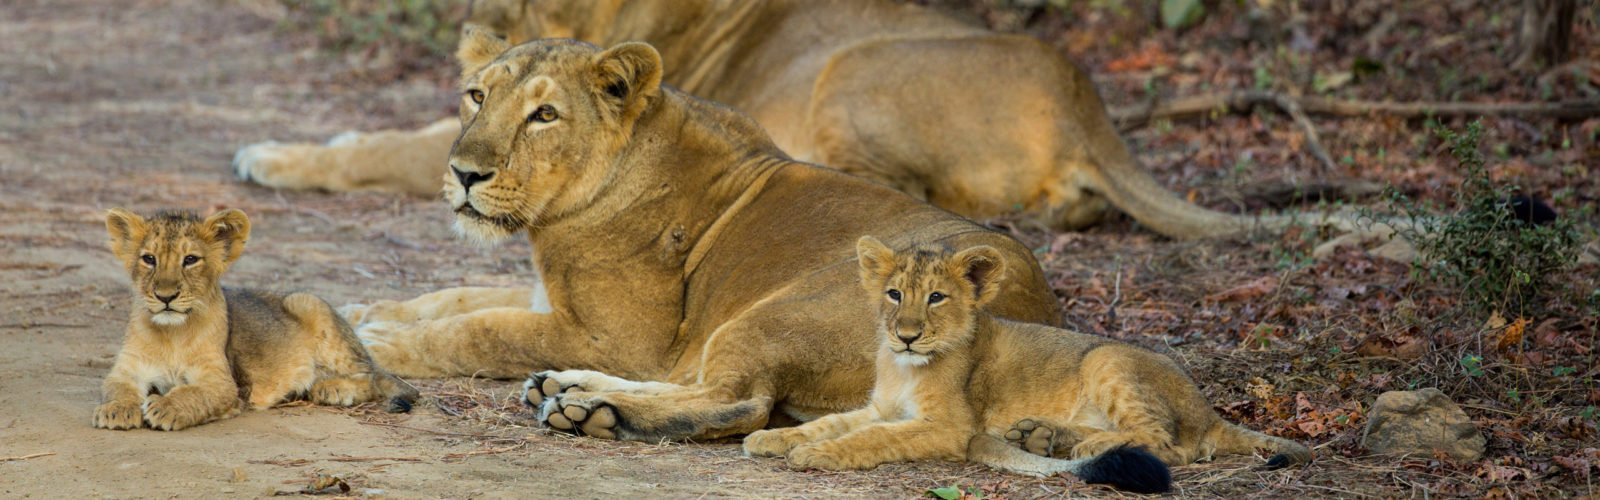 asiatic-lions-gir-forest-national-park-india